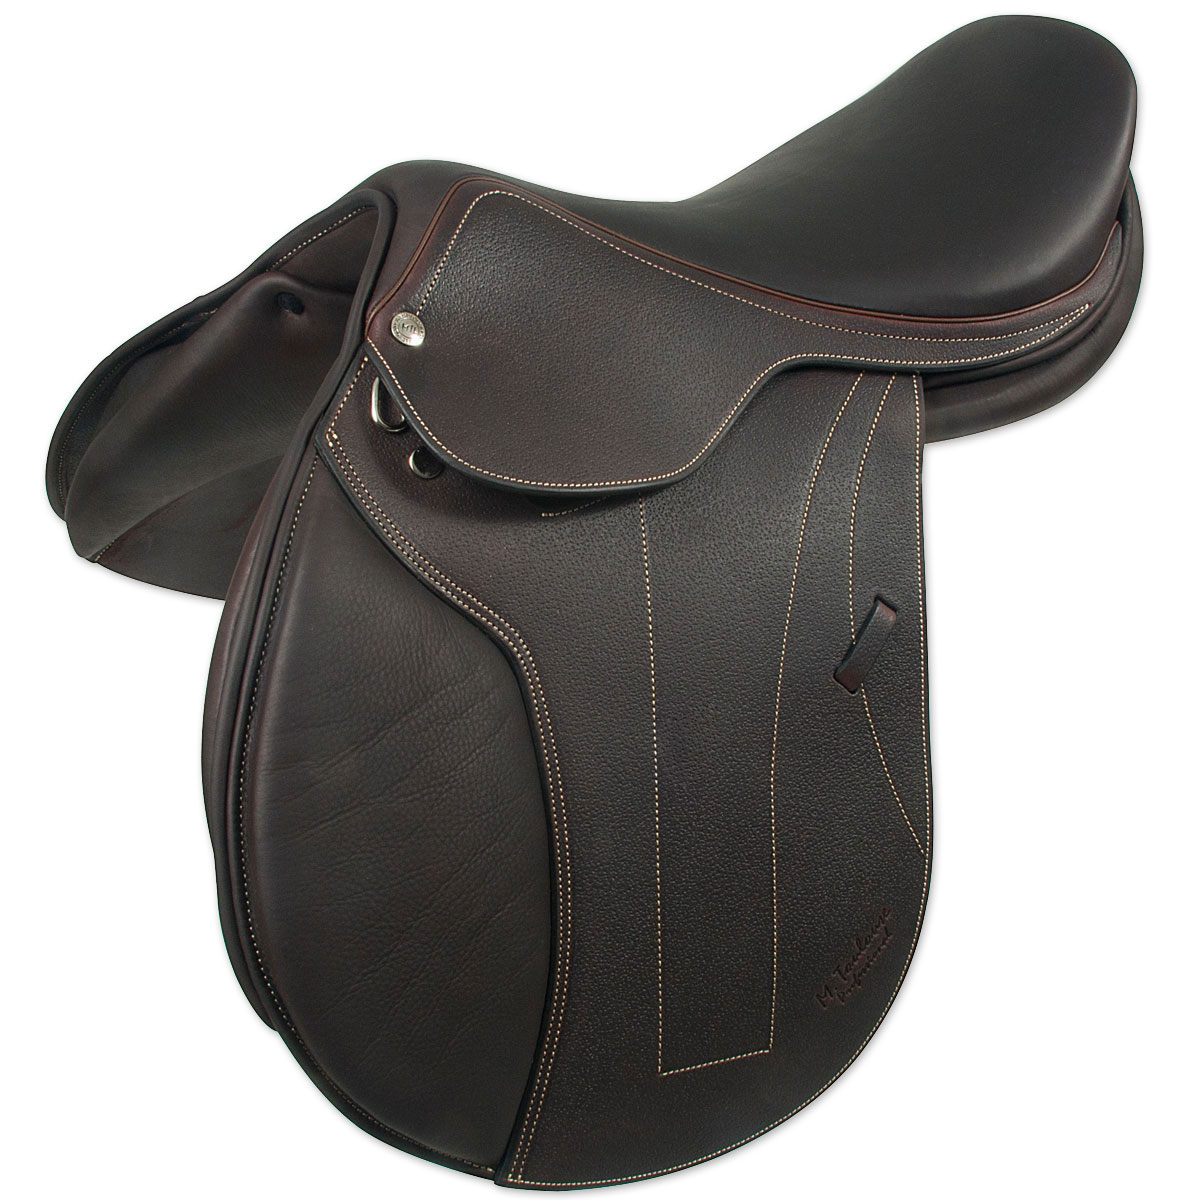 M. Toulouse Bretta Pro Close Contact Saddle with Genesis System